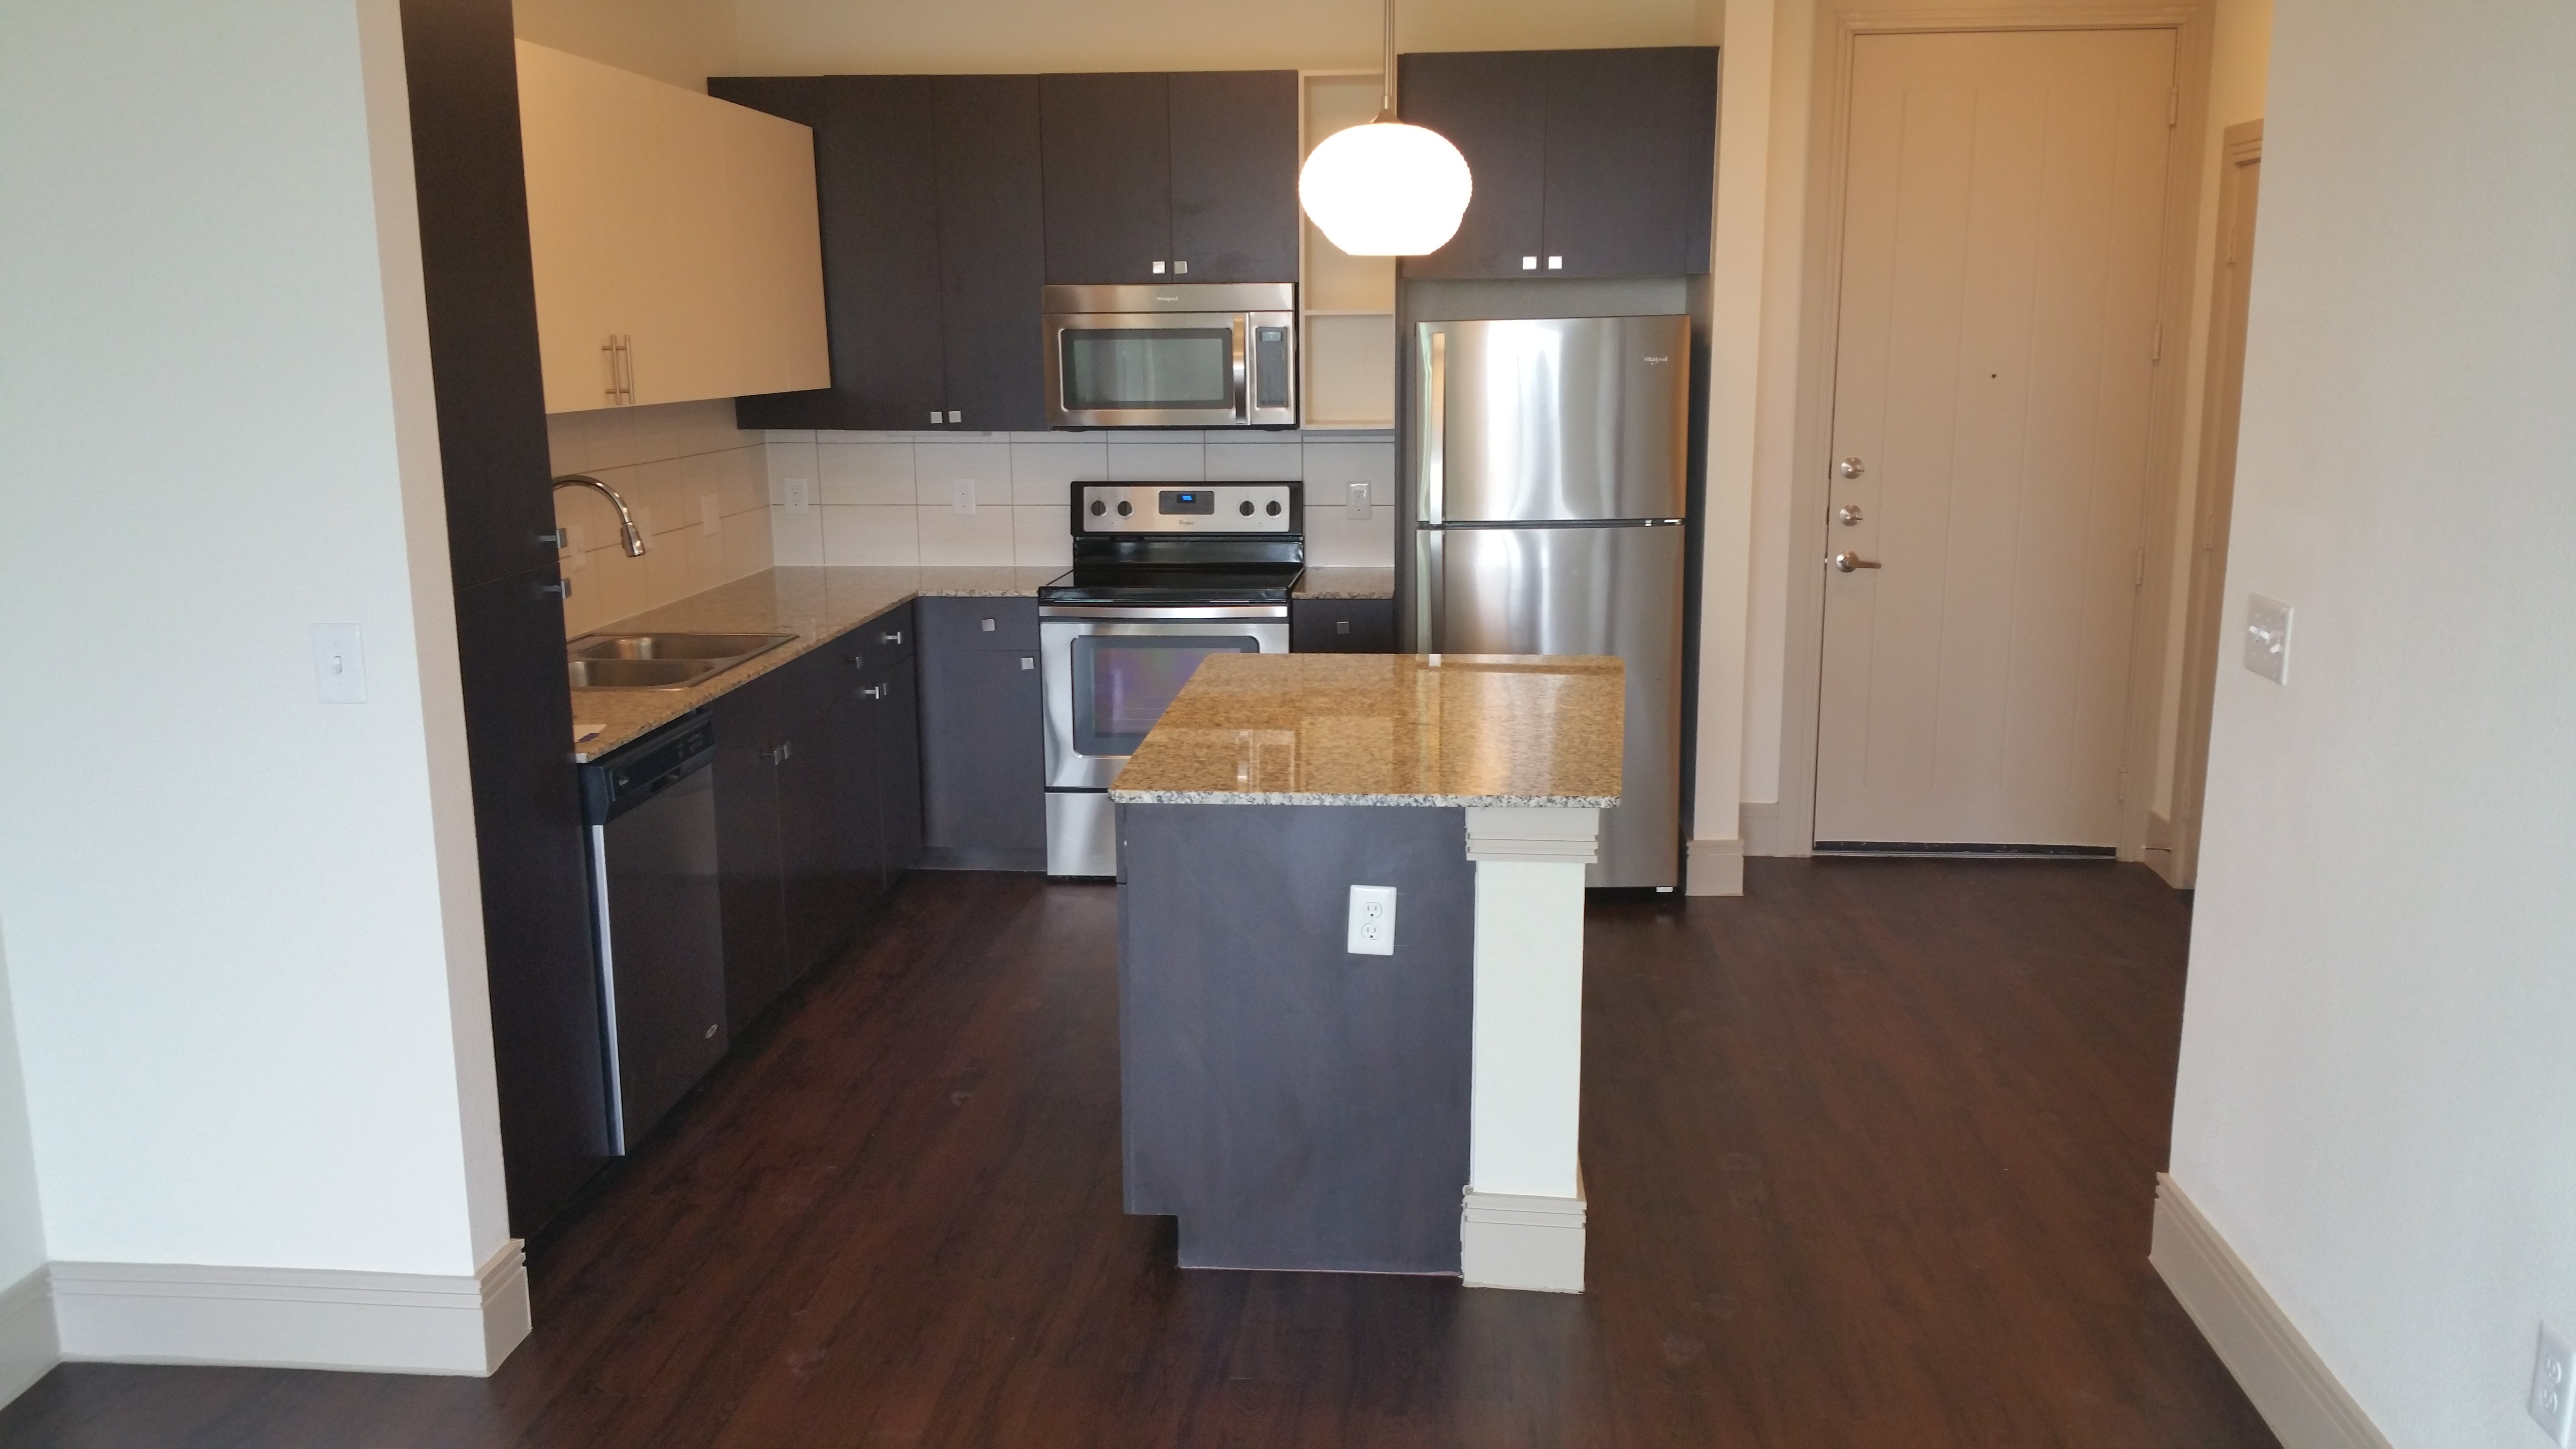 South Lamar Blvd Dickson Drive Austin Tx 78704 1 Bedroom Apartments For Rent For 1 601